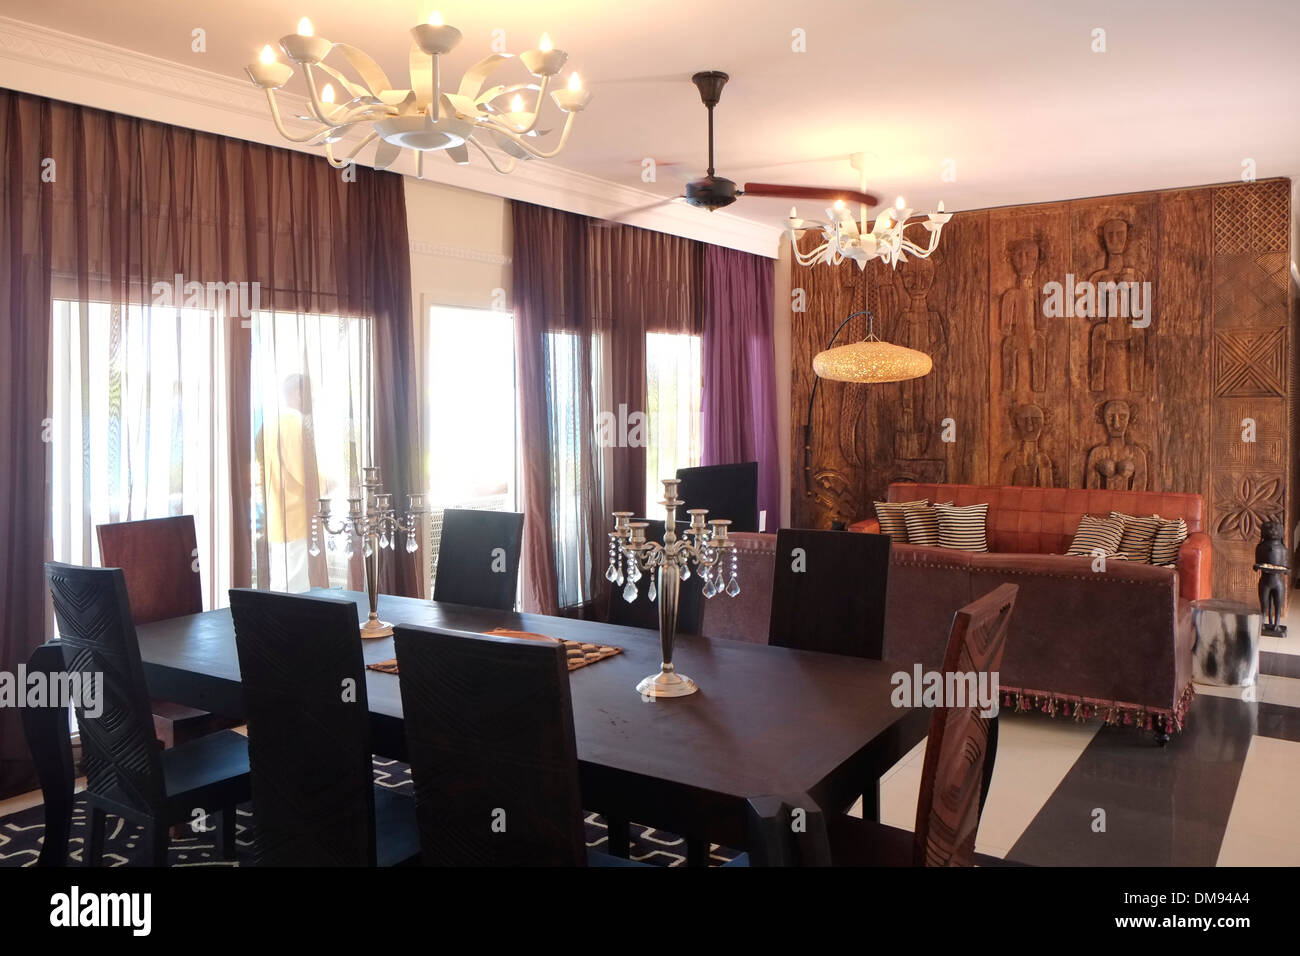 The Presidential Suite in Hideaway of Nungwi Resort hotel on the north-west coast of Zanzibar island a semi-autonomous part of Tanzania, in East Africa - Stock Image